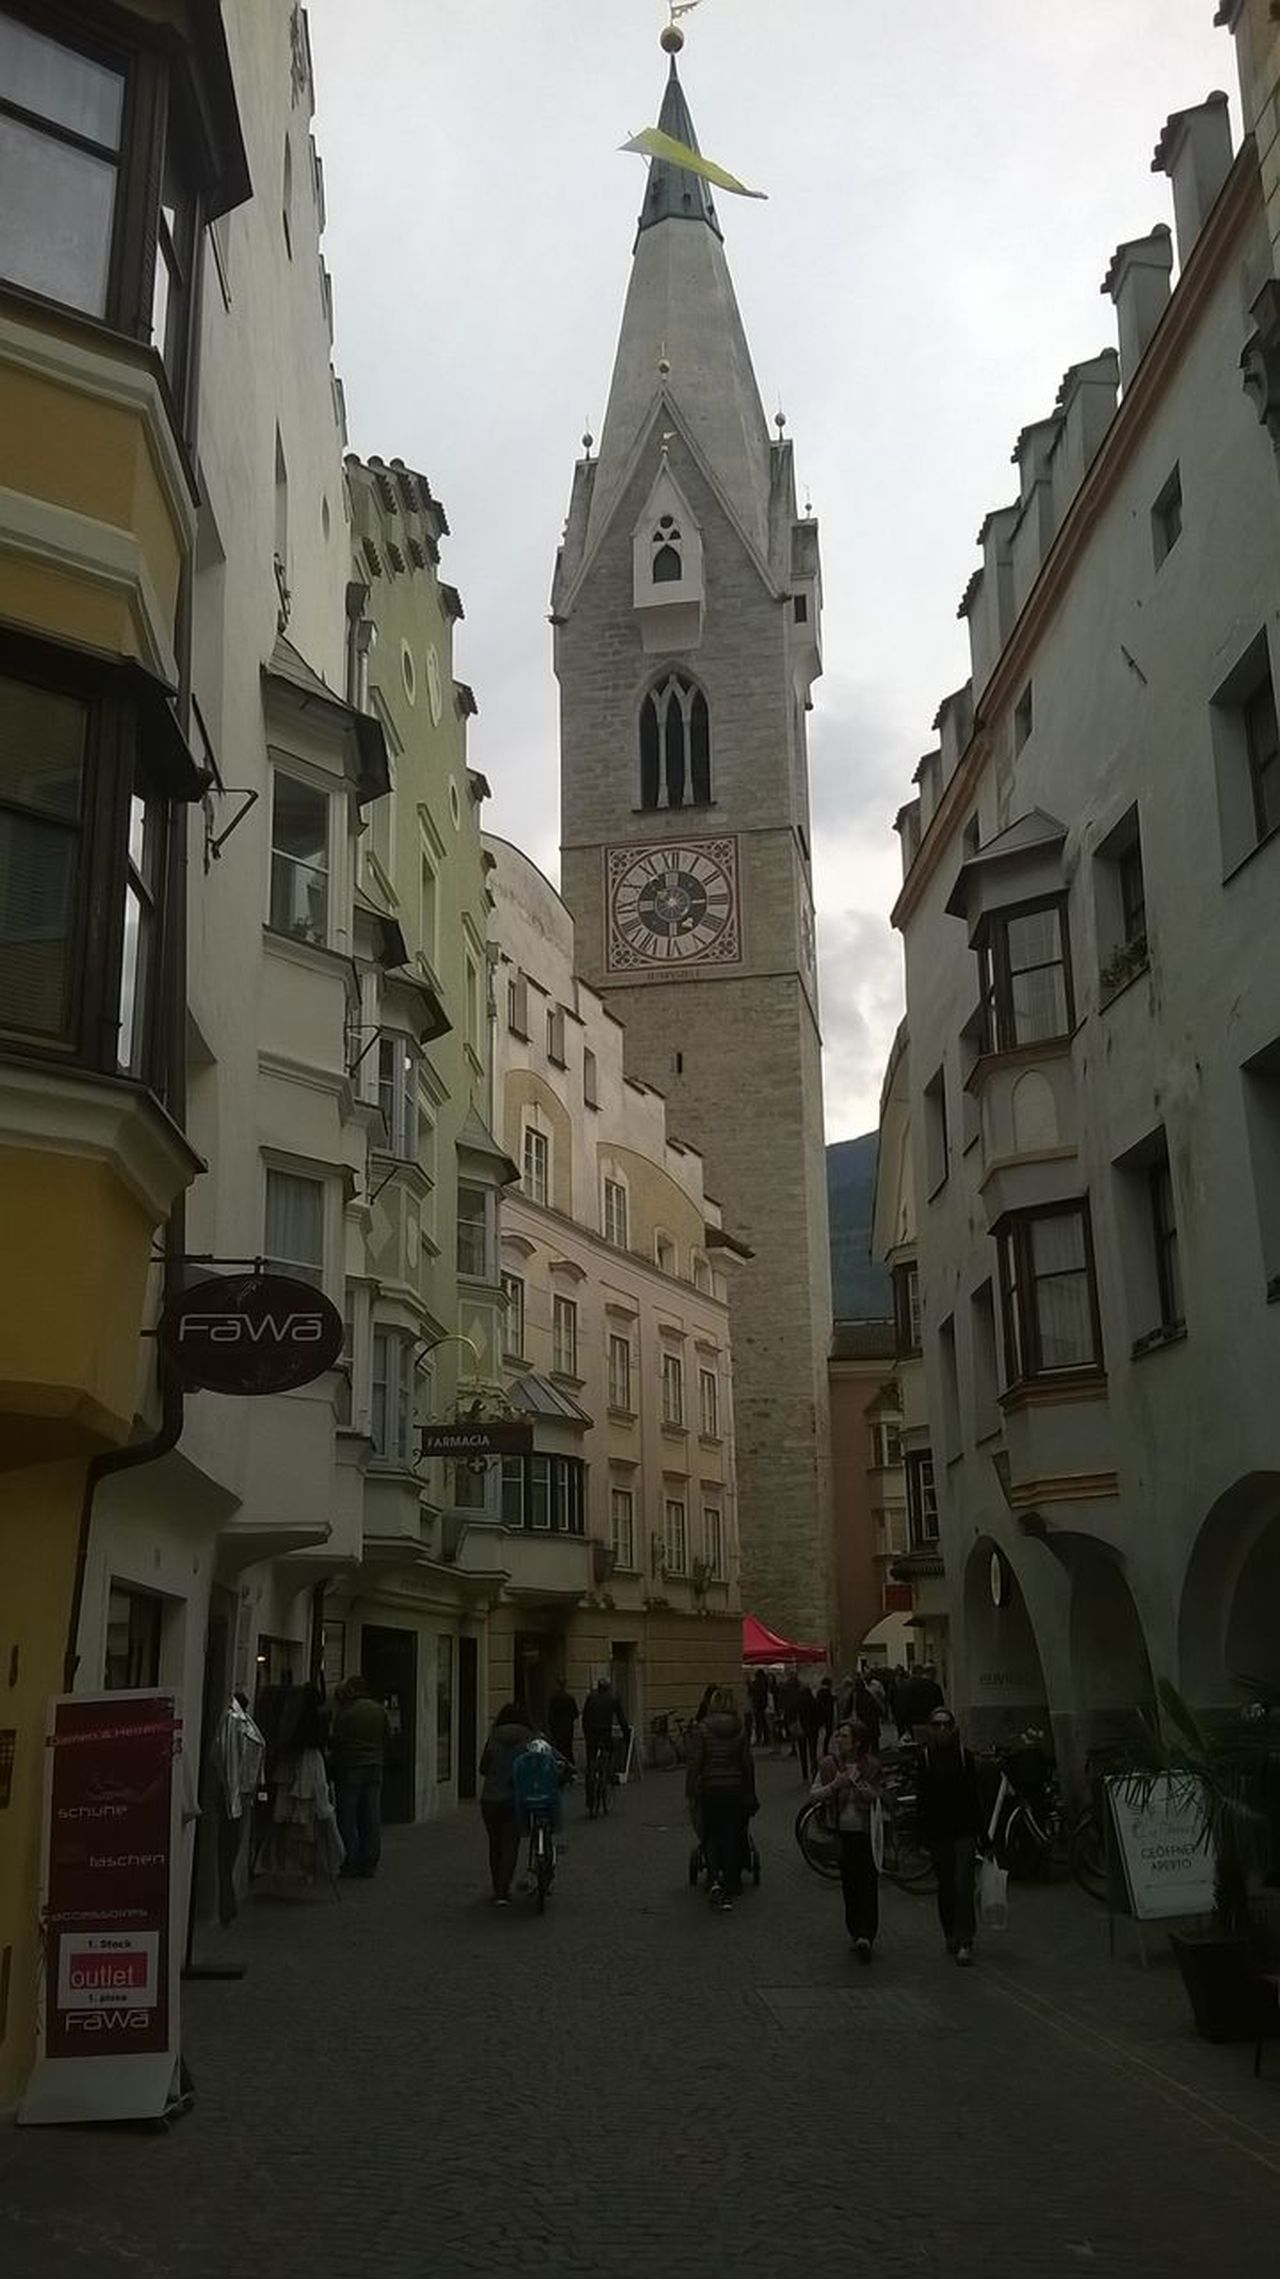 Architecture Building Exterior Built Structure City Clock Tower Day Large Group Of People Men Outdoors People Place Of Worship Real People Sky Travel Destinations